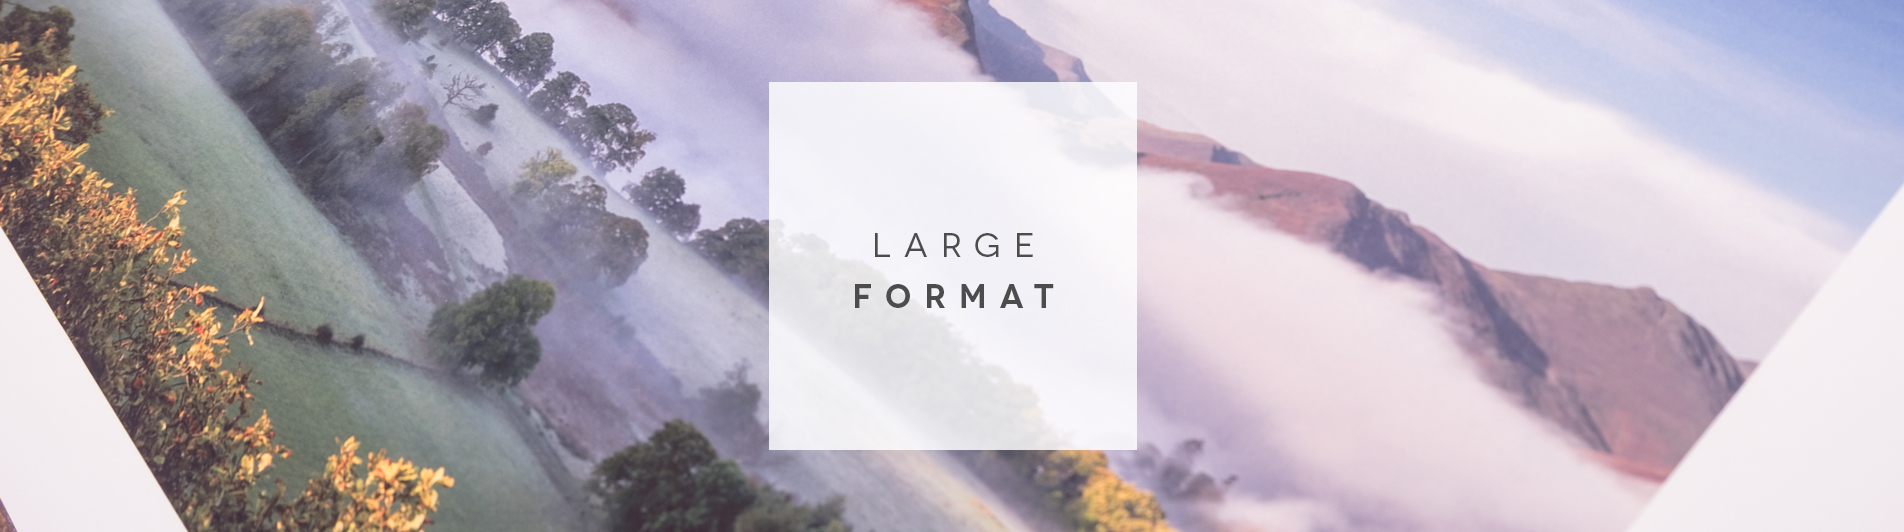 large Format